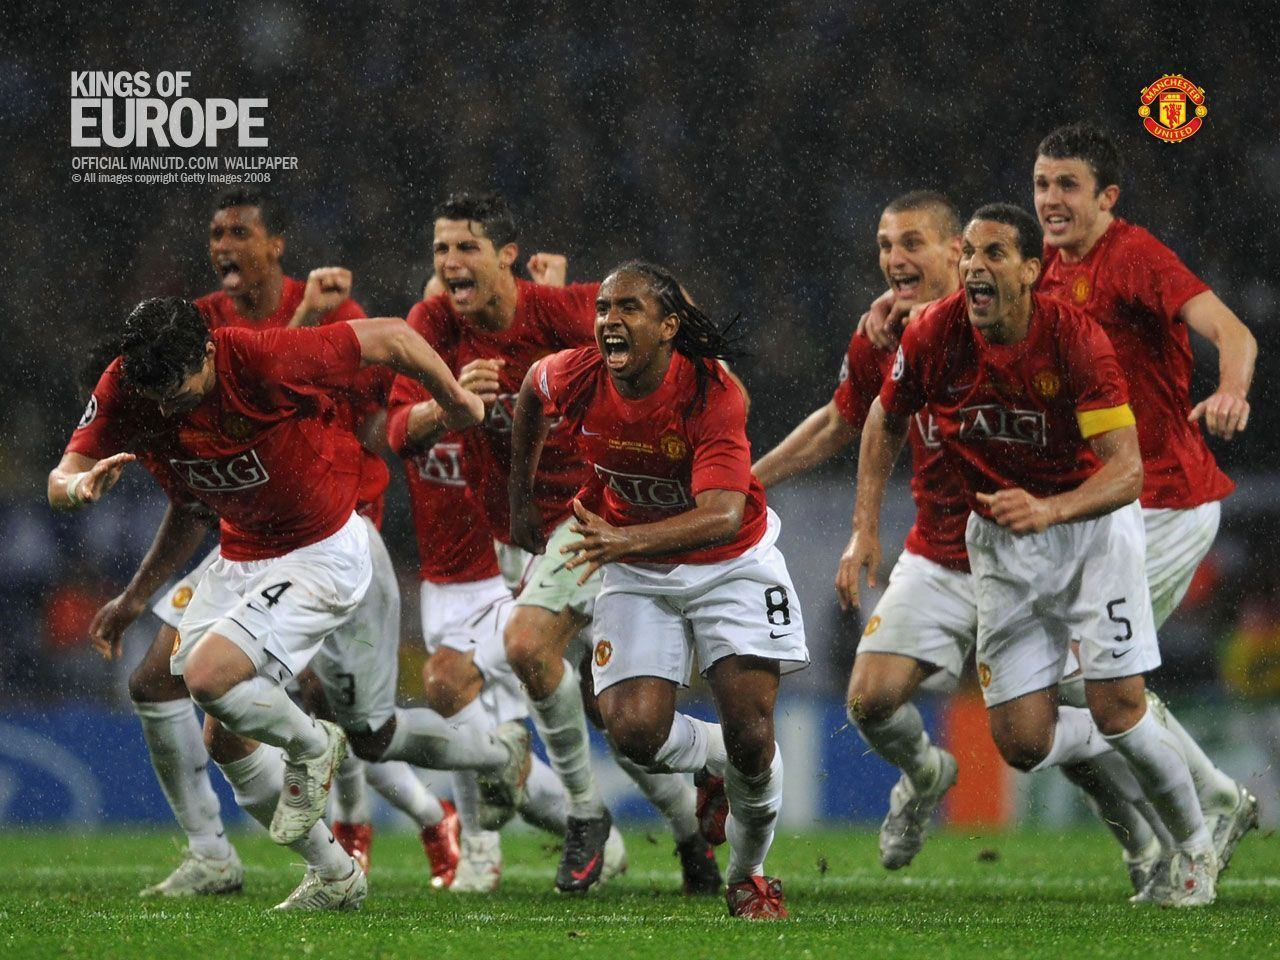 Why Manchester united is the king of Europe?